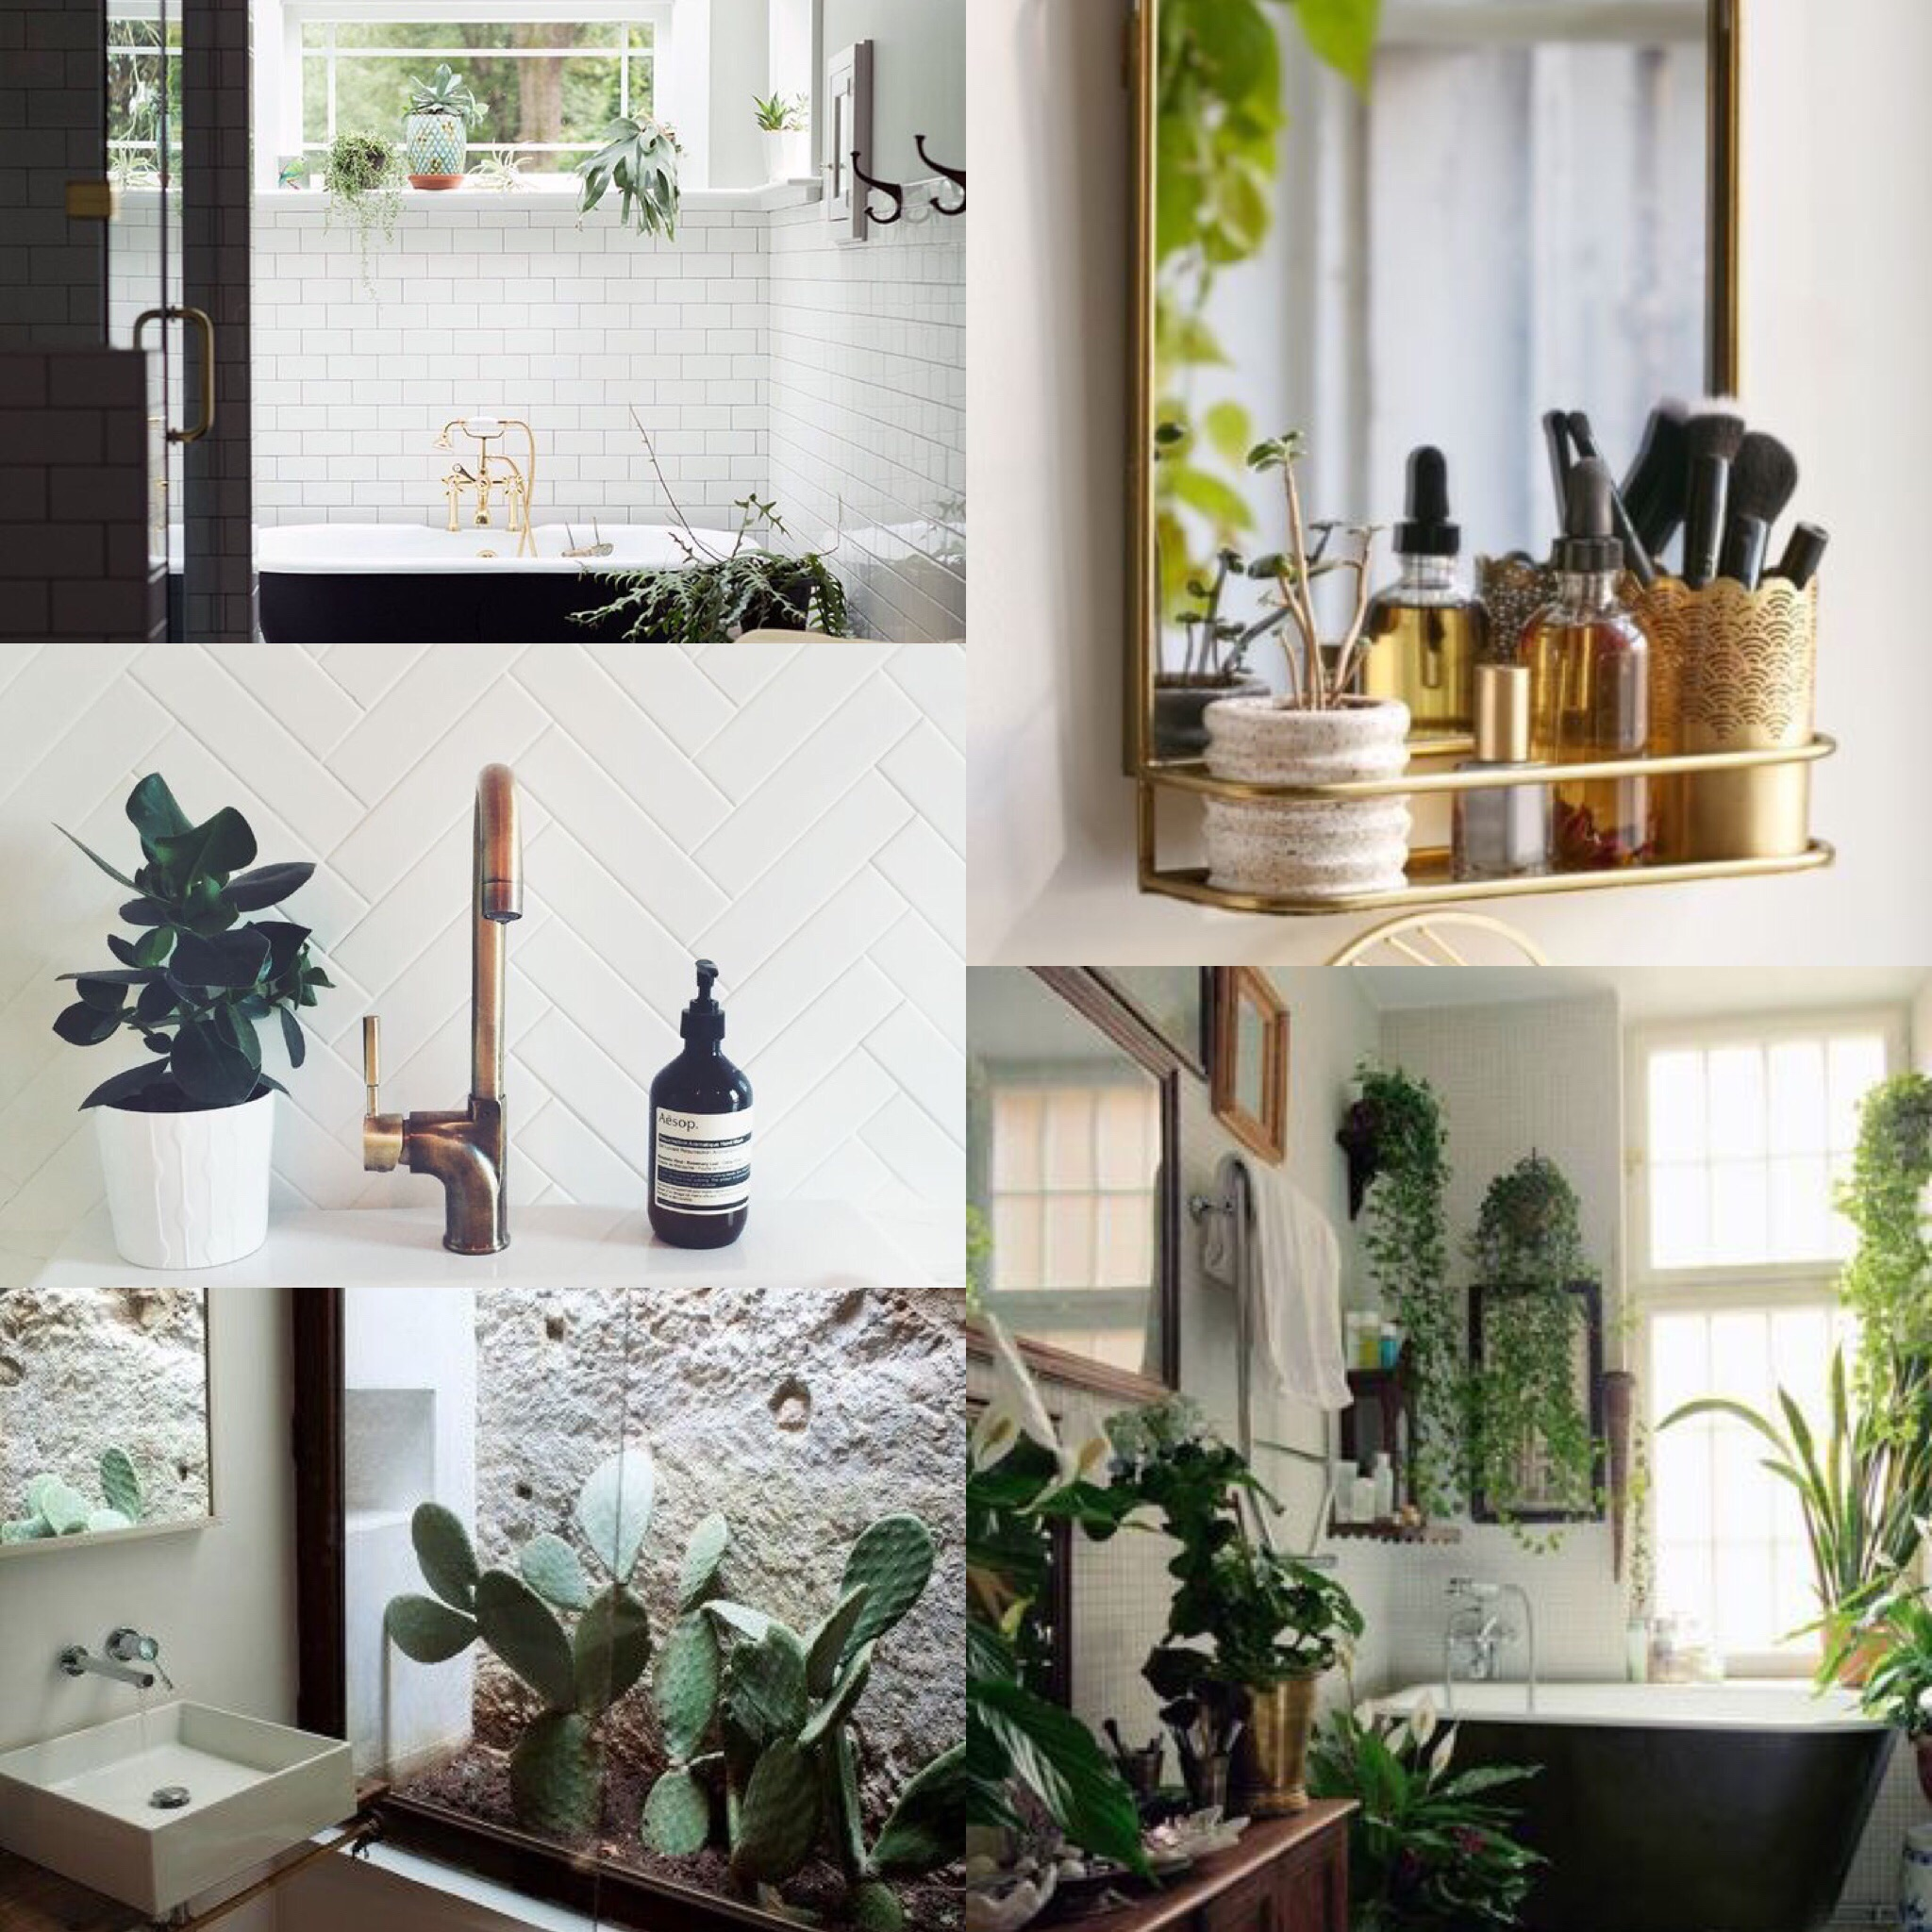 Clockwise from top left.  Bathroom, Gold Accents.   Gold Vanity Mirror .  Bathroom, Hanging Plants .  Bathroom, View of Cactus.   Bathroom, Copper Accent, and Plant.